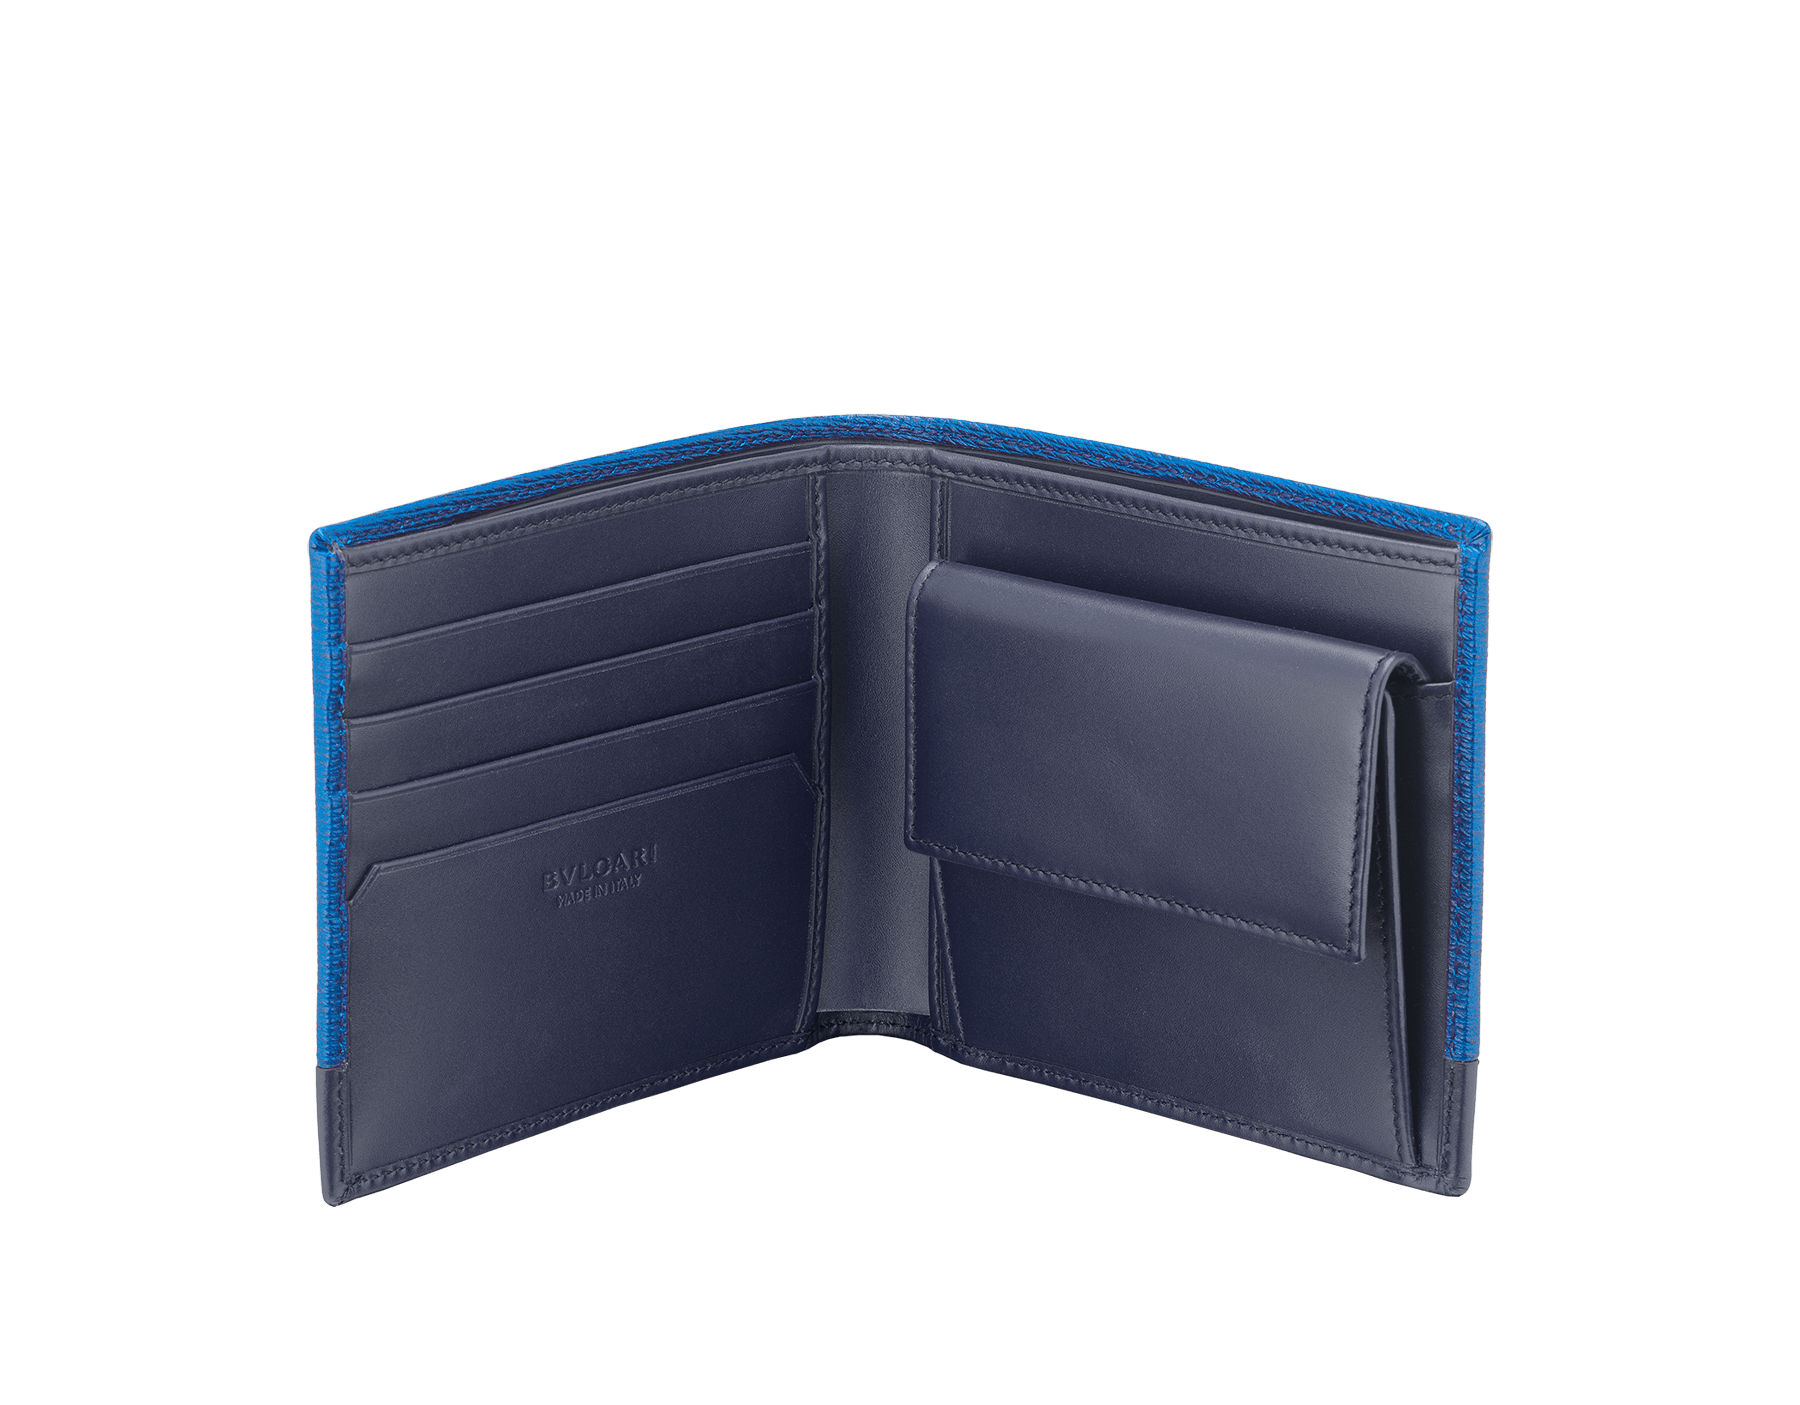 Serpenti Scaglie men's wallet in cobalt tourmaline grazed calf leather and dark denim calf leather. Bvlgari logo engraved on the hexagonal scaglie metal plate finished in dark ruthenium. 288603 image 2